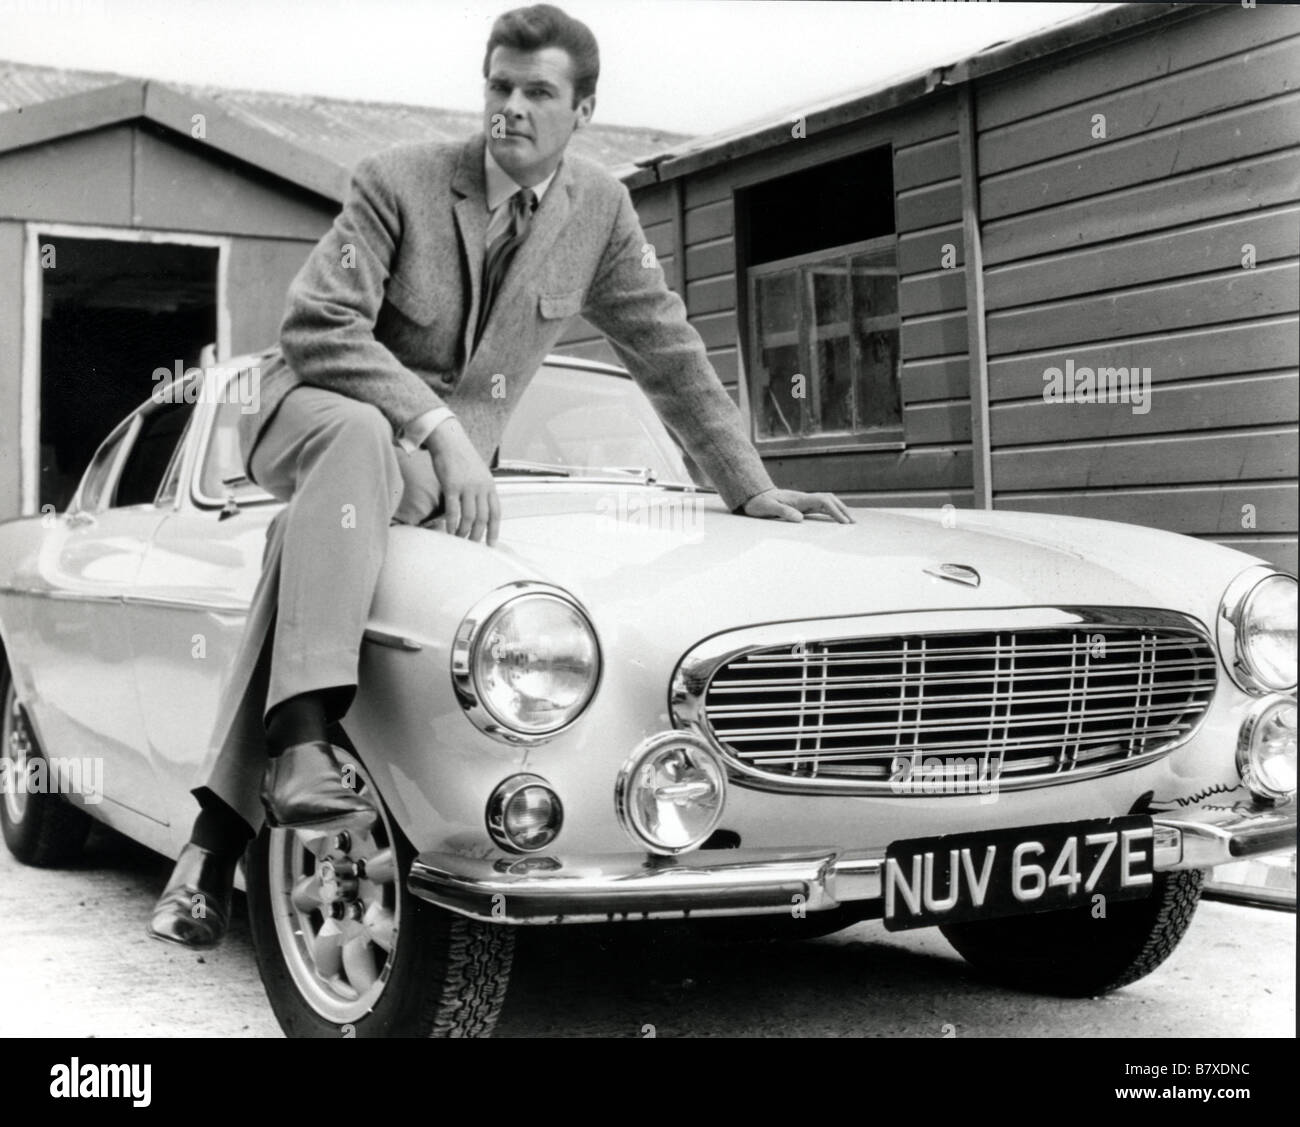 Roger Moore with the Volvo 1800  sports car for the TV serie The Saint This particular model registered as NUV647E - Stock Image